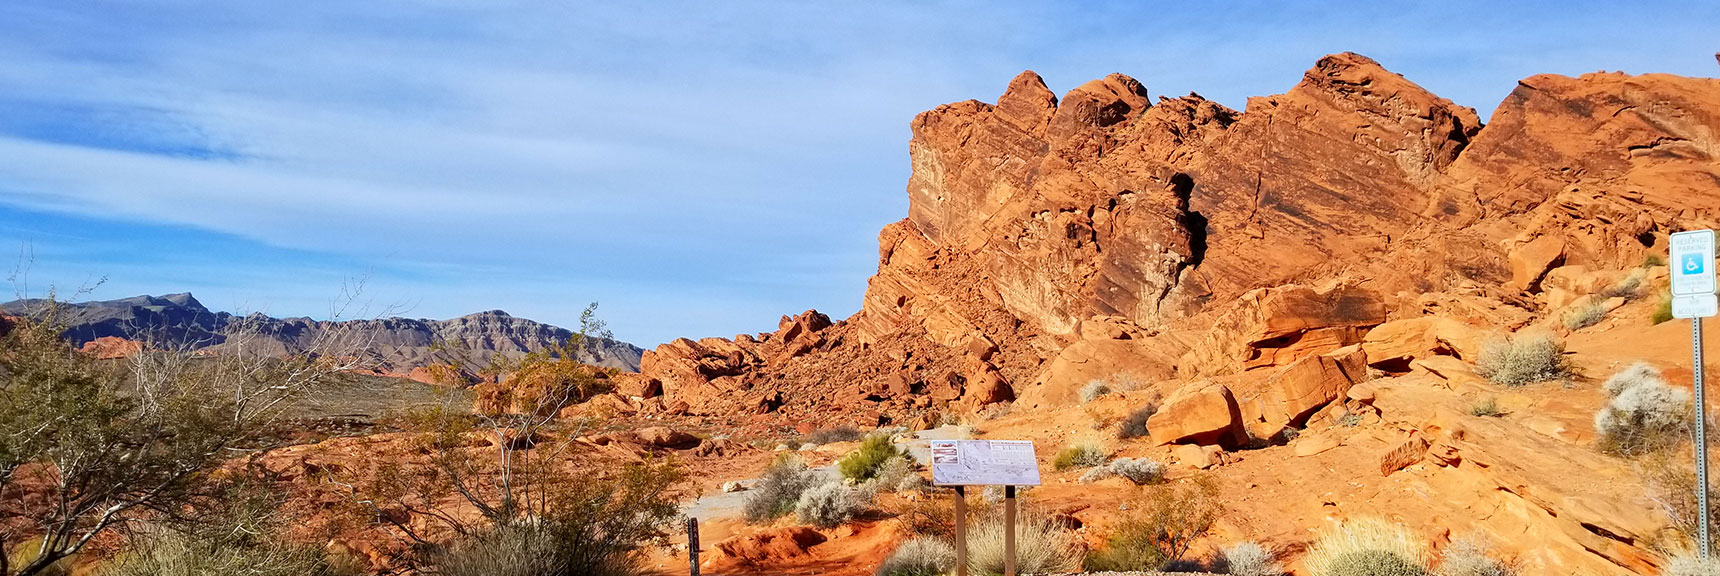 Balancing Rock Trailhead in Valley of Fire State Park, Nevada